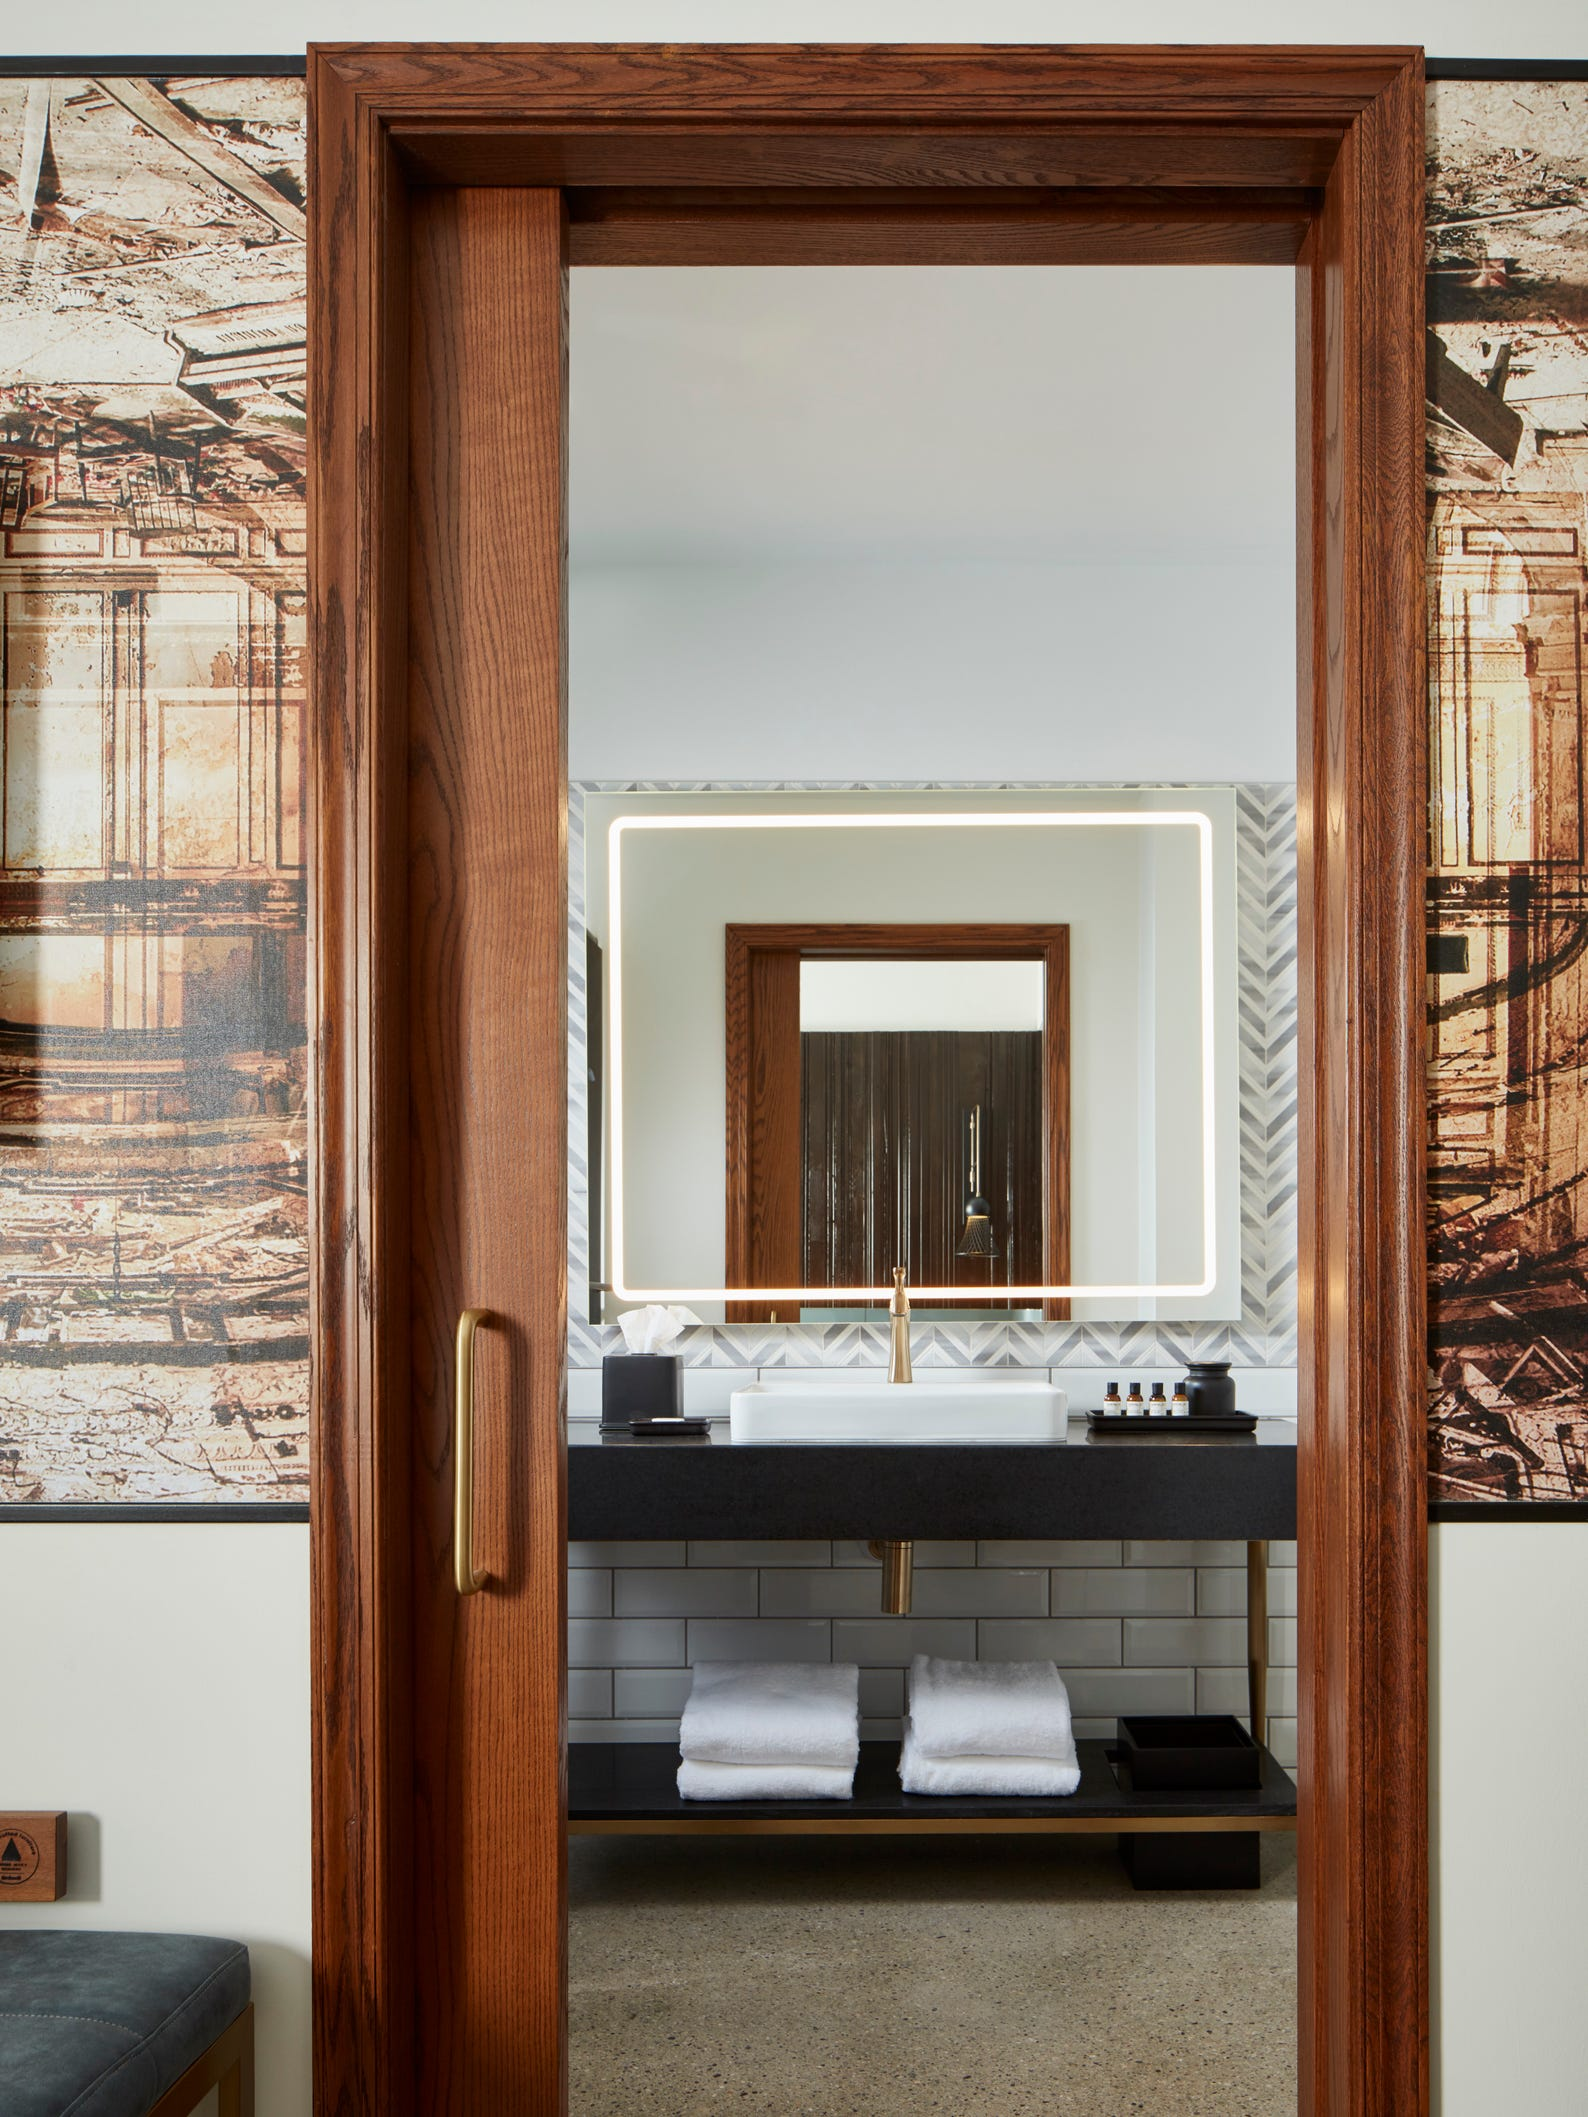 design in Detroit's newest hotels